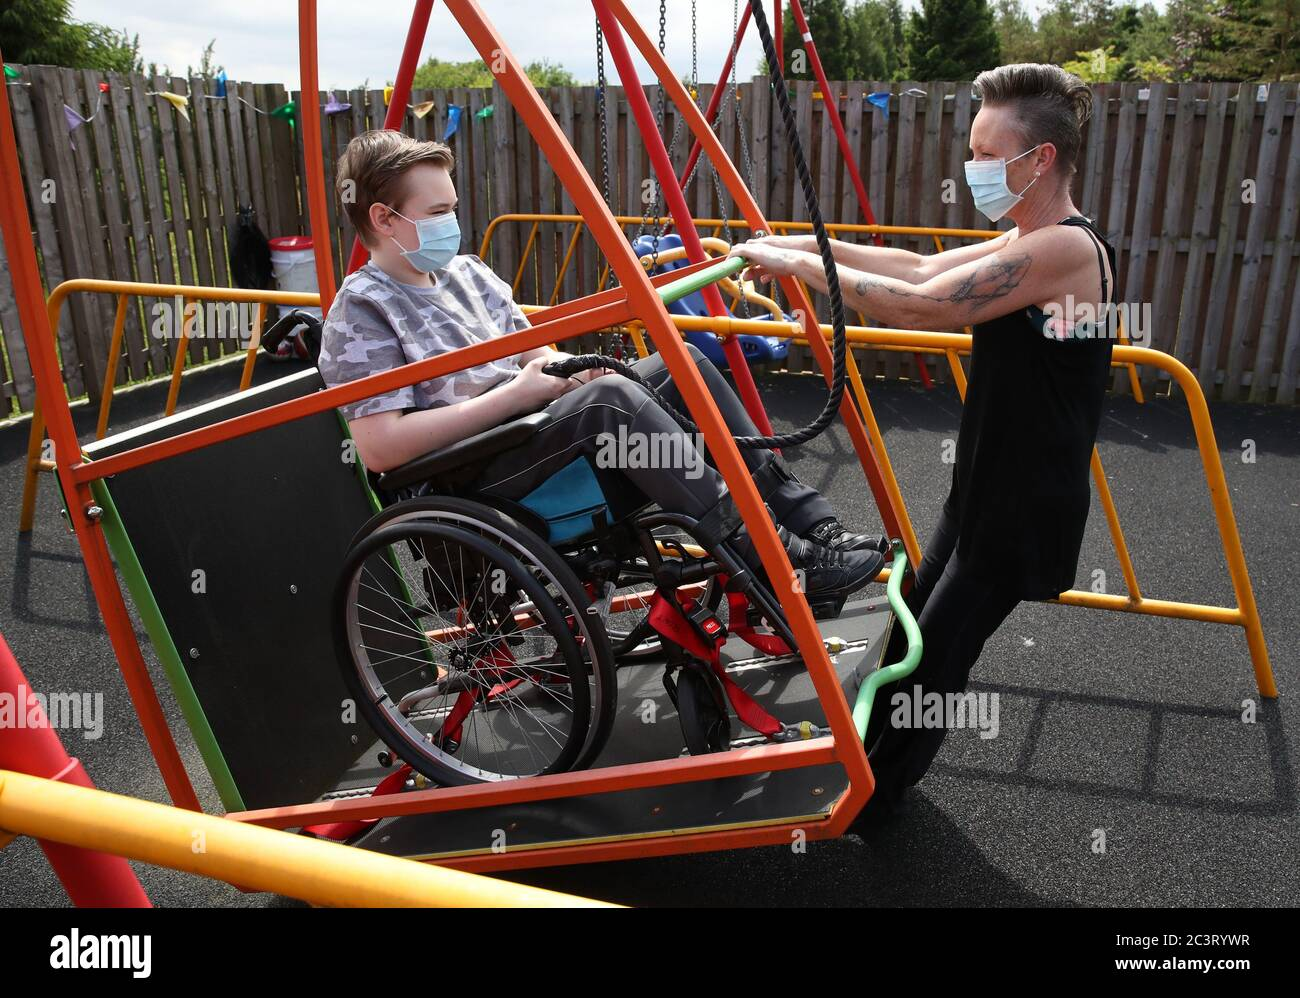 Gregor Marshall with his mum Karen as Gregor has a ride on the wheelchair swing in the outside therapy area at the Craighalbert Centre. Coronavirus adaptations have been installed at the Scottish Centre for Children with Motor Impairments, Craighalbert Centre, Cumbernauld, as Scotland continues gradually lifting coronavirus lockdown measures. Stock Photo